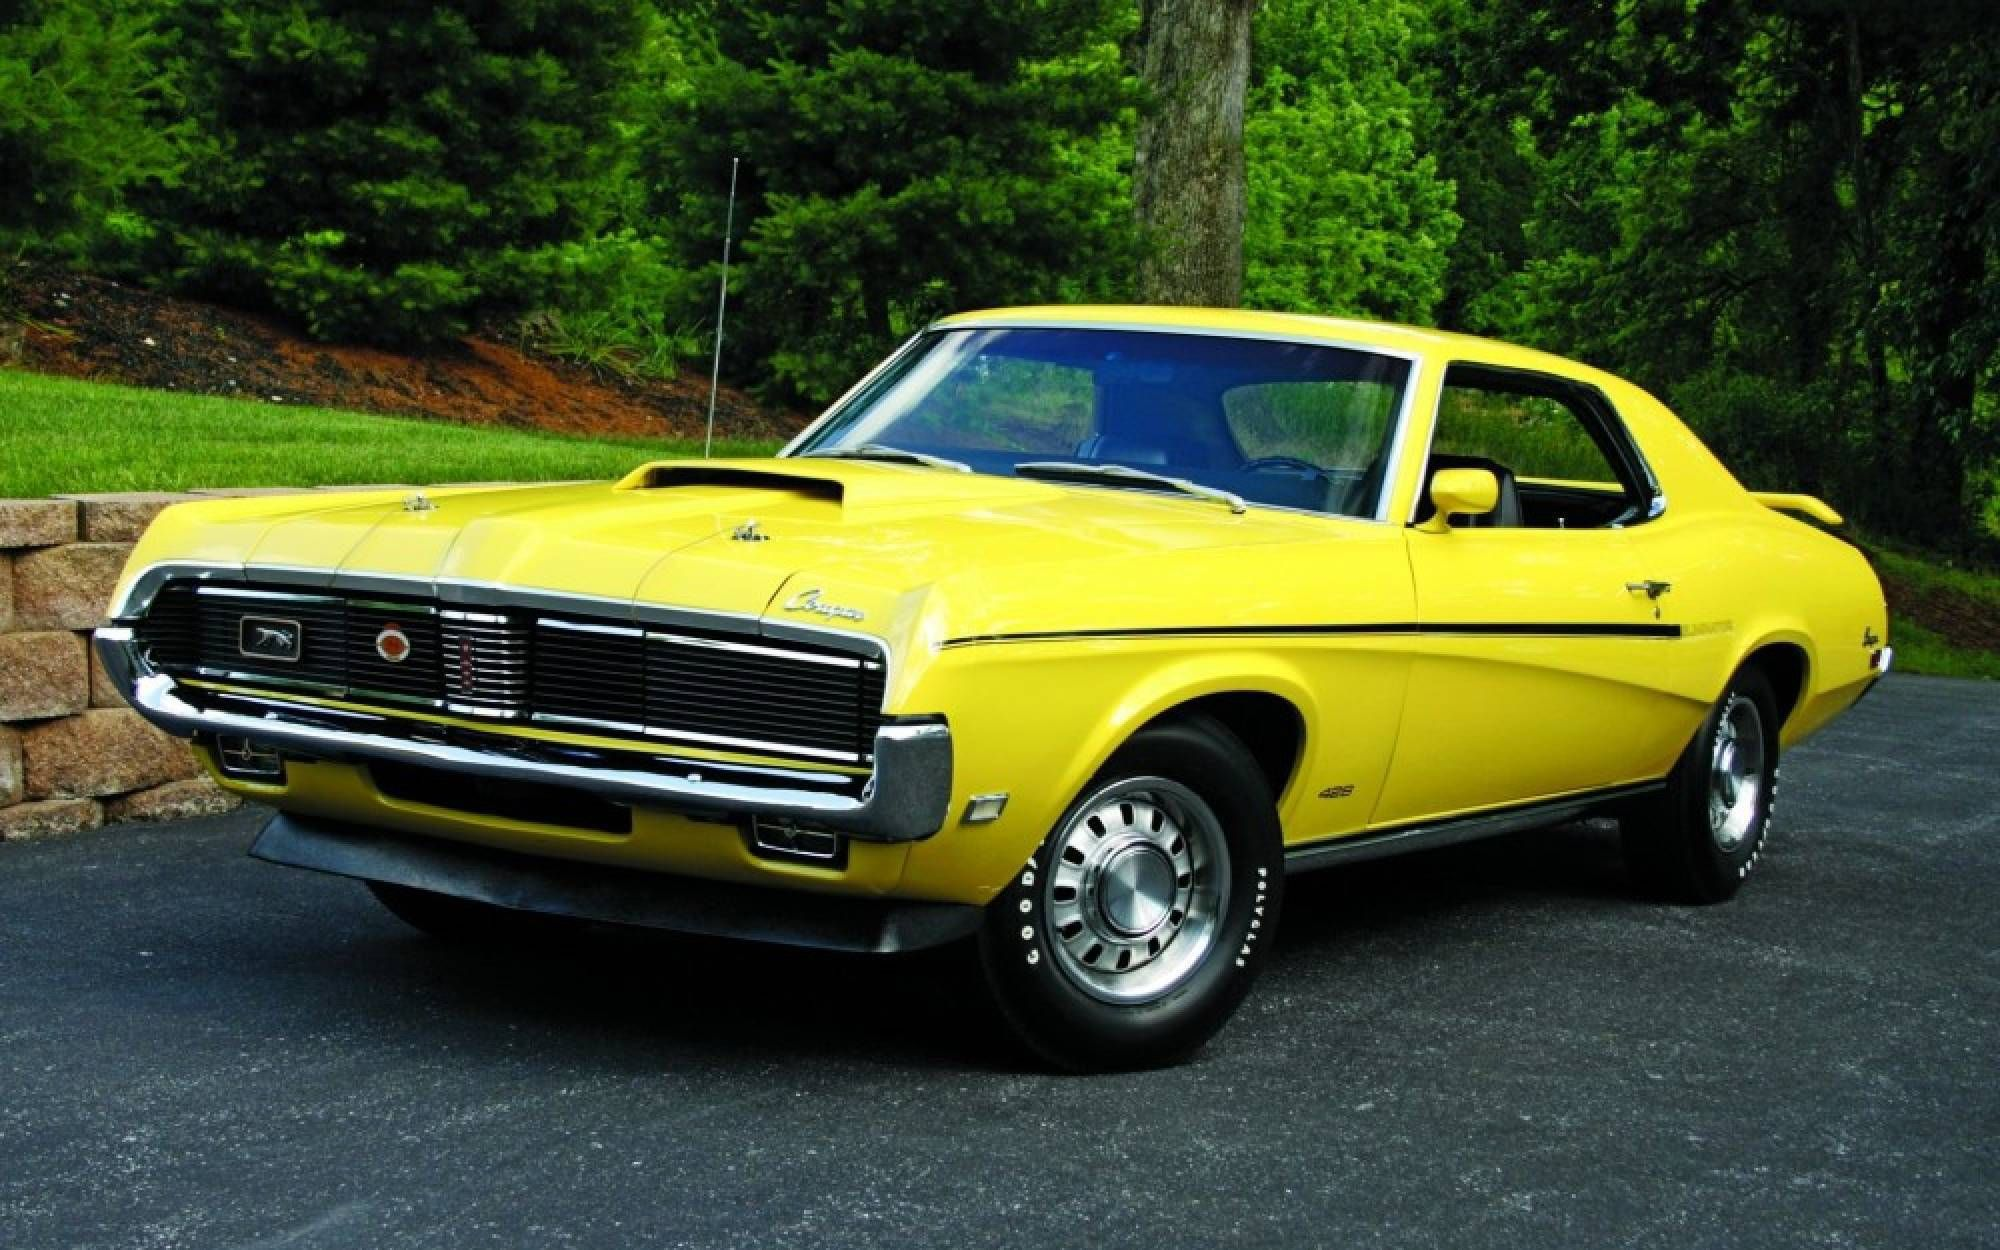 Top 10 Muscle Cars | Sports Cars | Pinterest | Sports cars and Cars